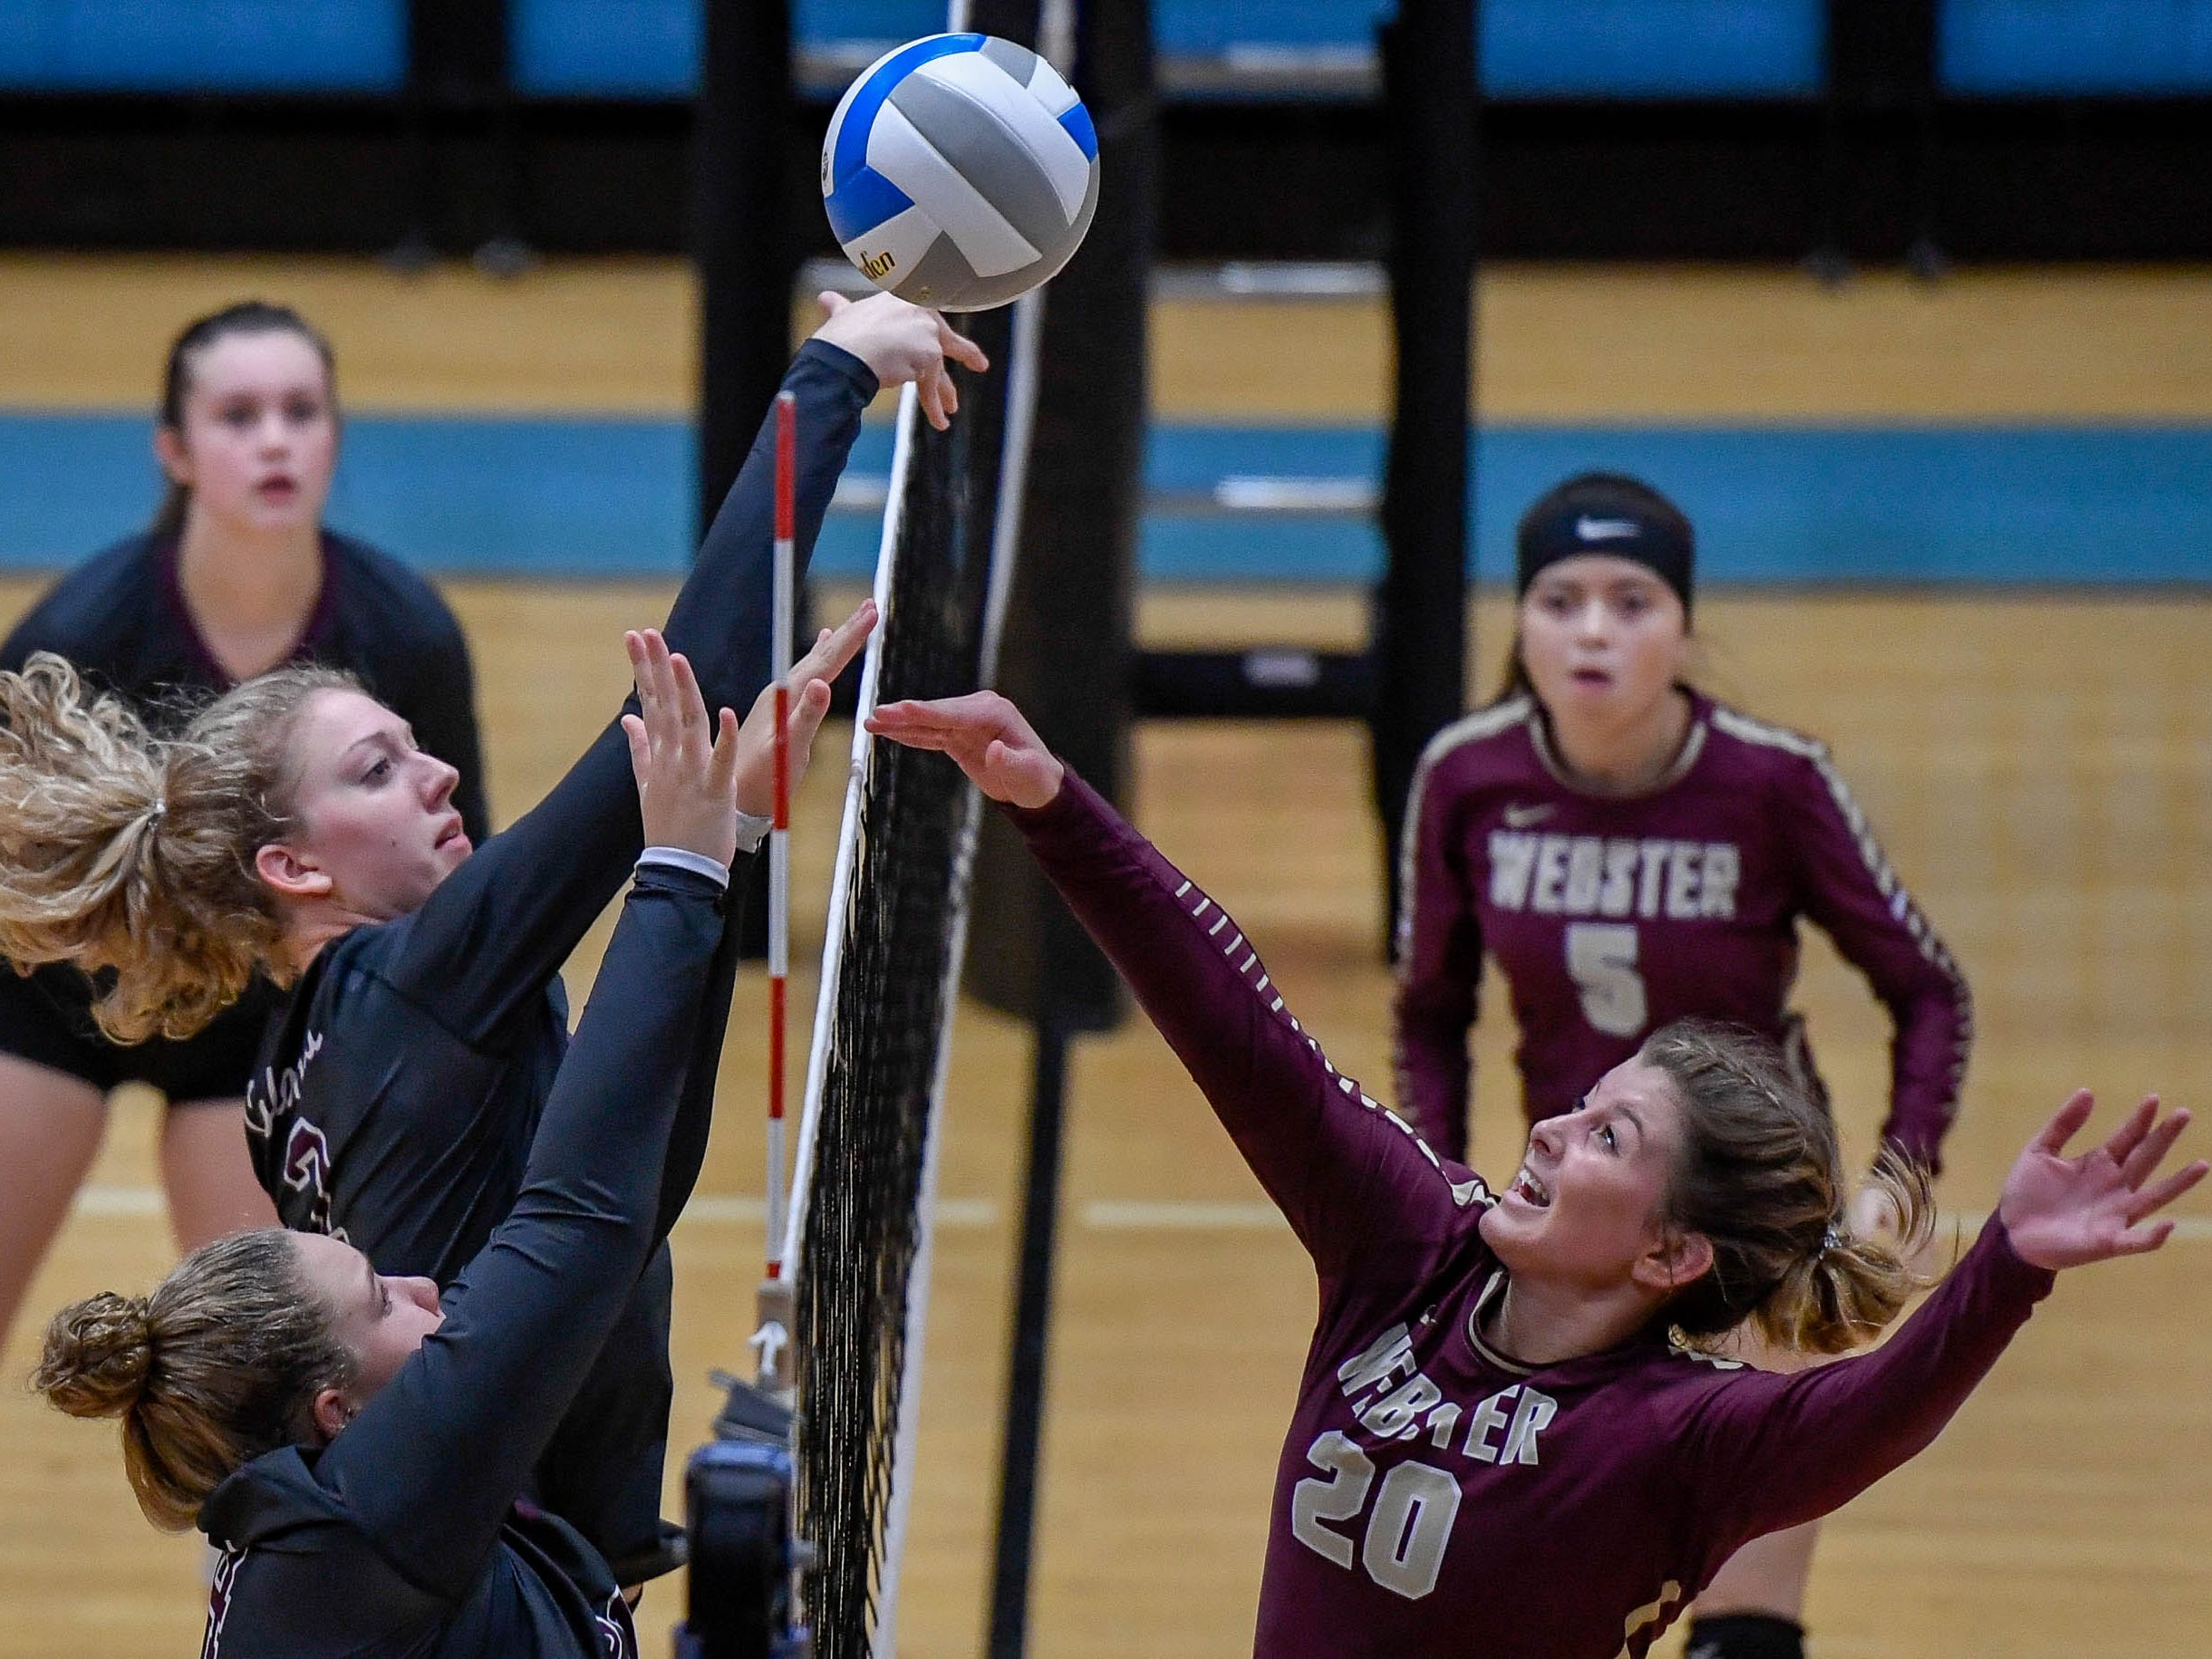 Henderson's Brooke Springer (2) and Maddison Williams (24 battle Webster's Lana Eastwood (20) as the Henderson County Lady Colonels play the Webster County Lady Trojans in the District Volleyball Tournament championship match in Morganfield, Tuesday, October 9, 2018.